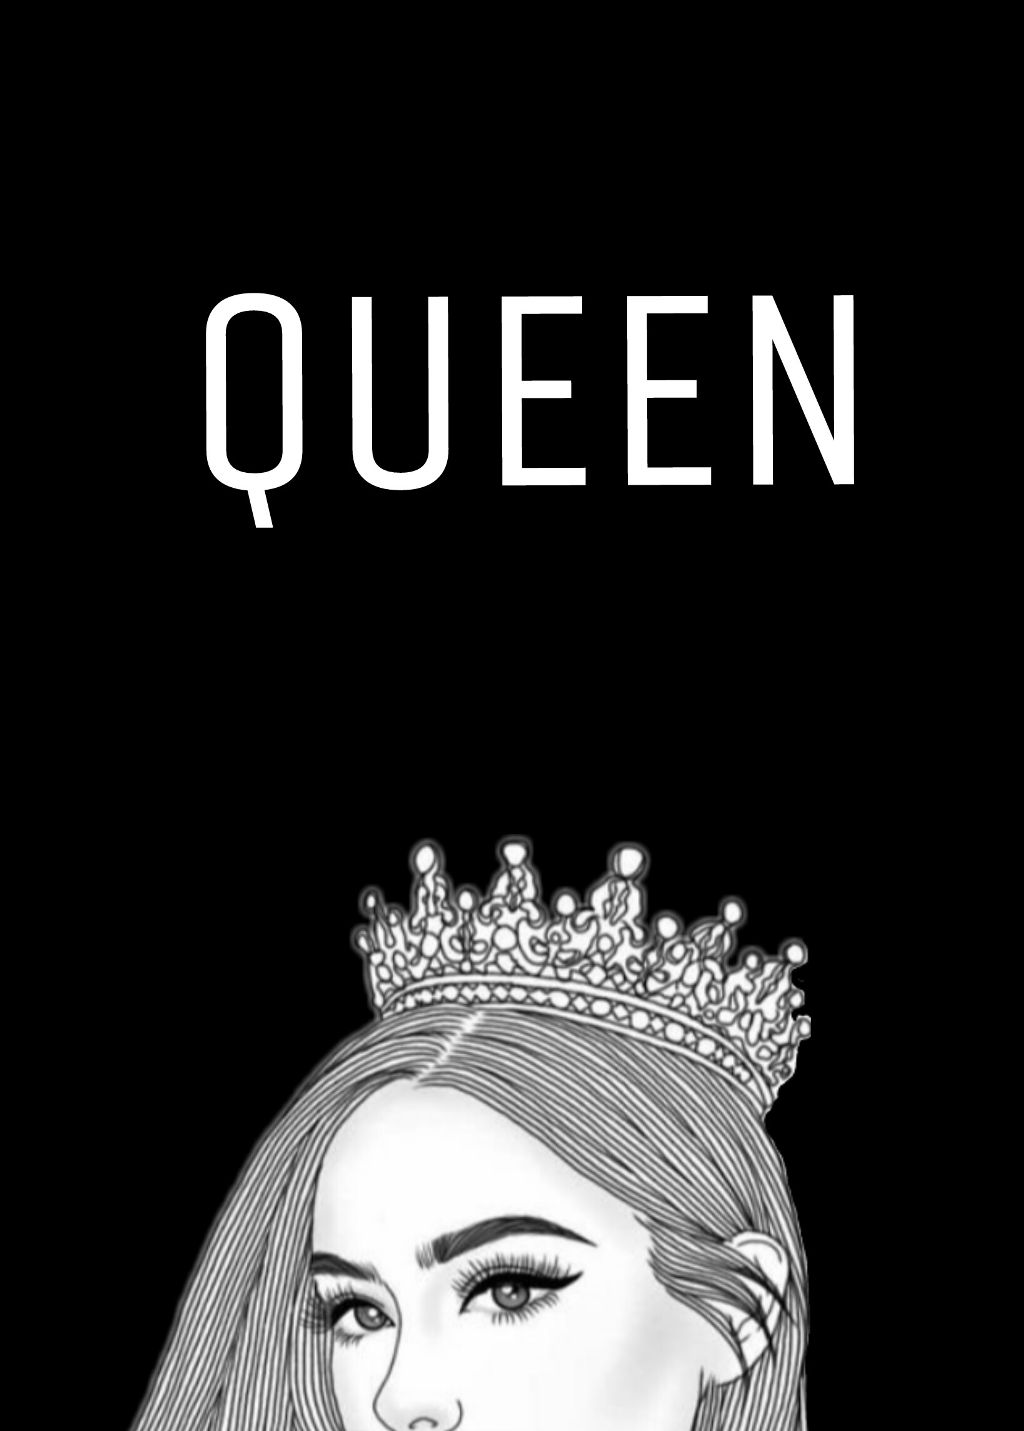 Wallpaper Queen Posted By Sarah Anderson